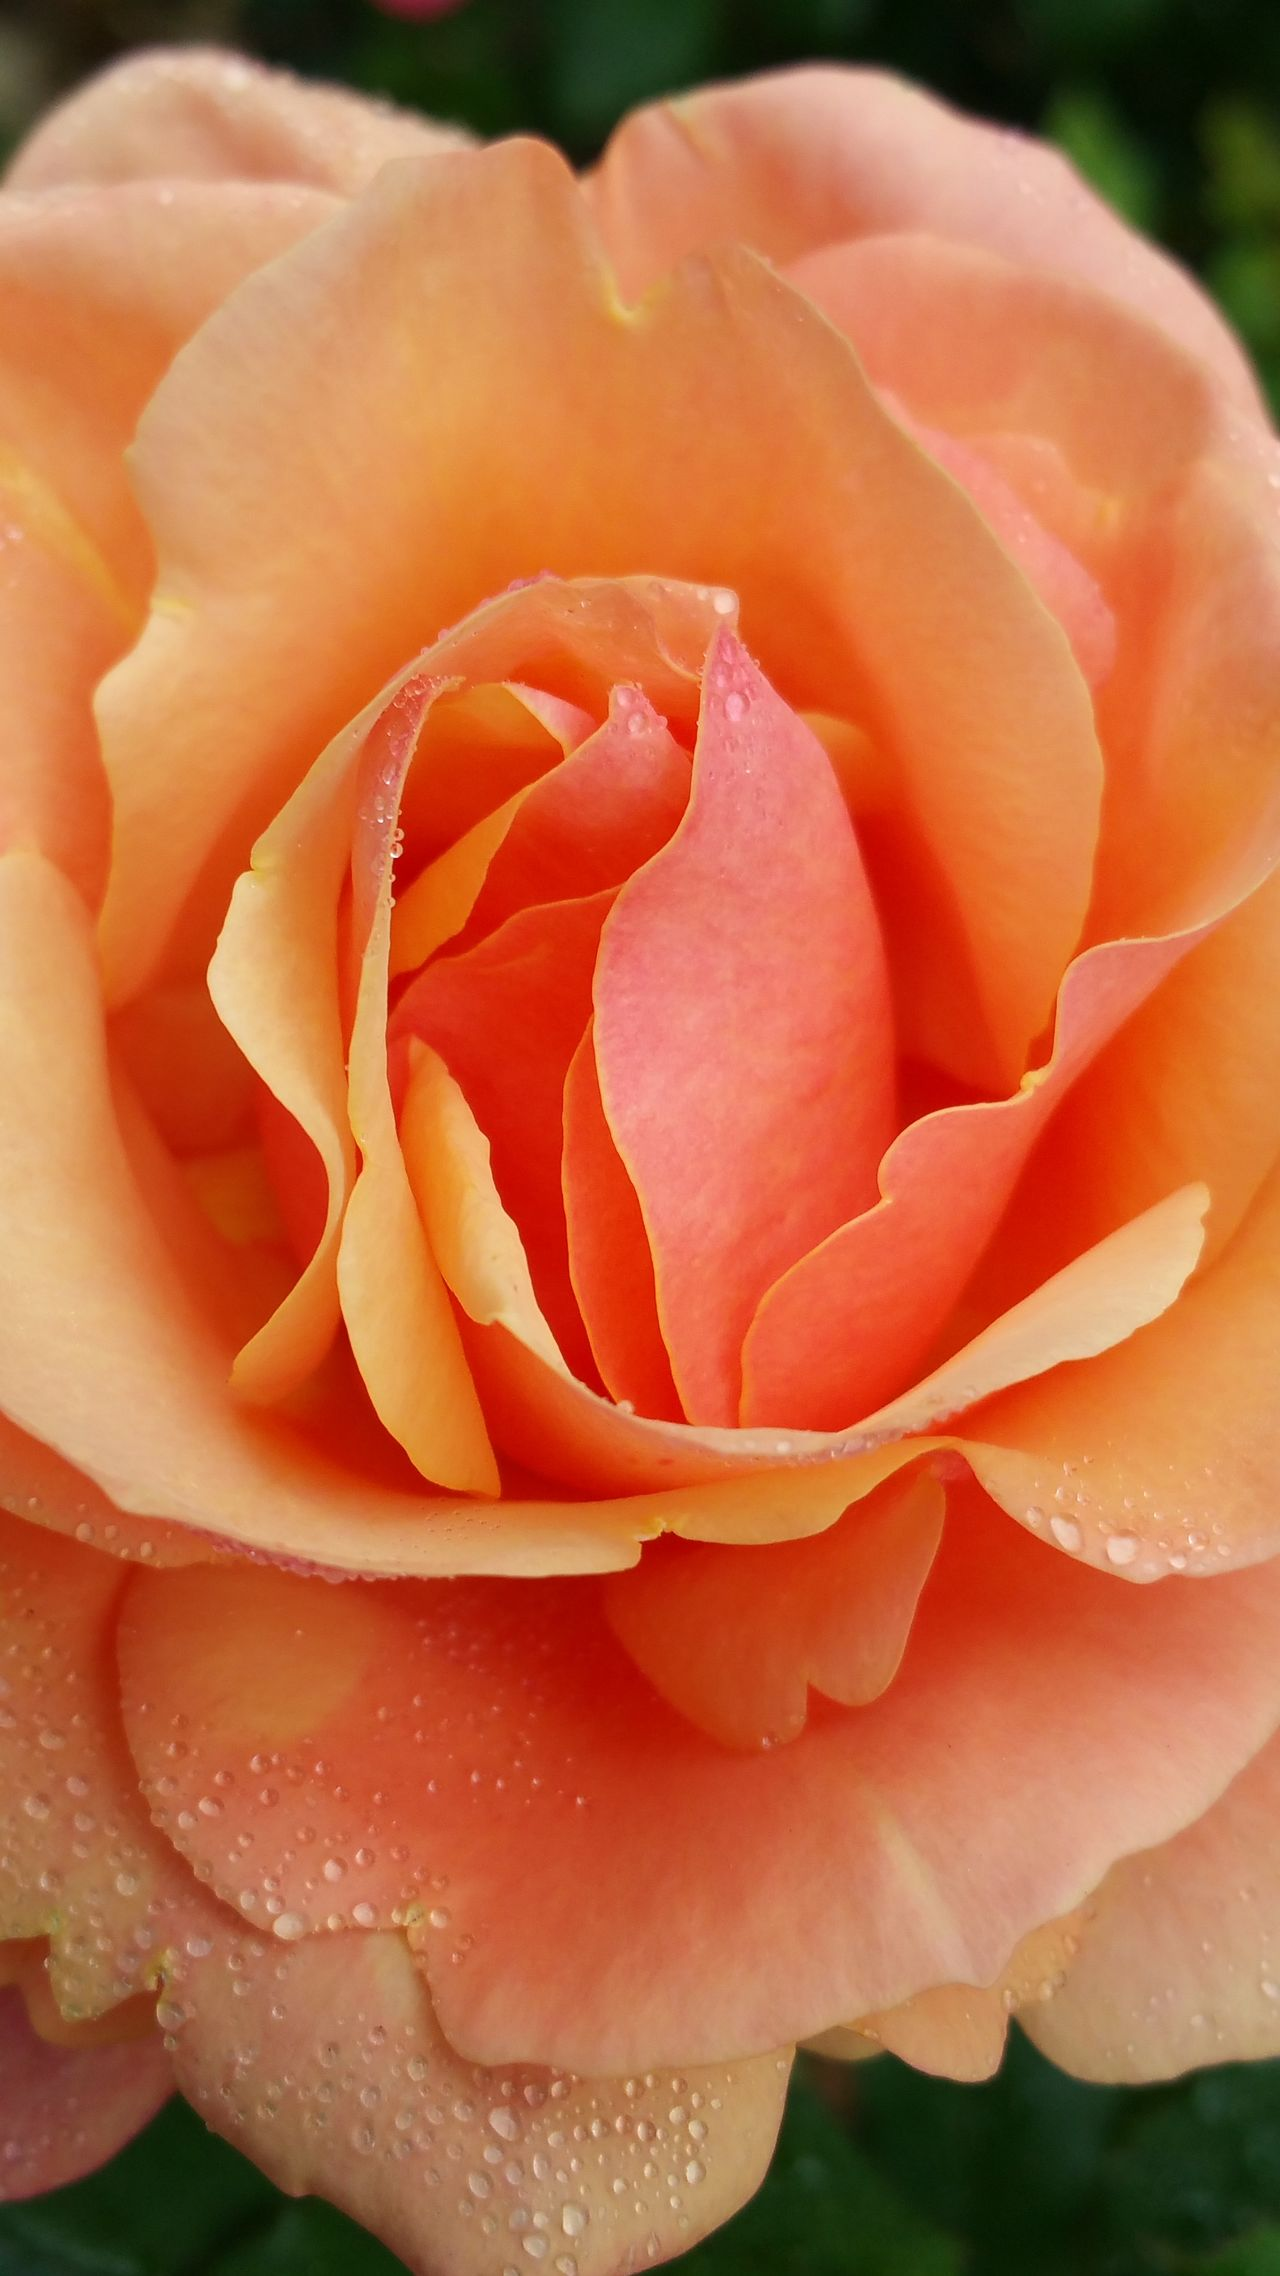 Blooming Blossom Botany Close-up Flower Pattern Texture Shape Design Fragility Freshness Peach Peach Rose Petal Pink Pink Color Red Rosé Rose - Flower Rosé Single Flower Macro Beauty Fine Art Photography Copy Space Serene EyeEm Nature Lover Still Life Photography Deceptively Simple